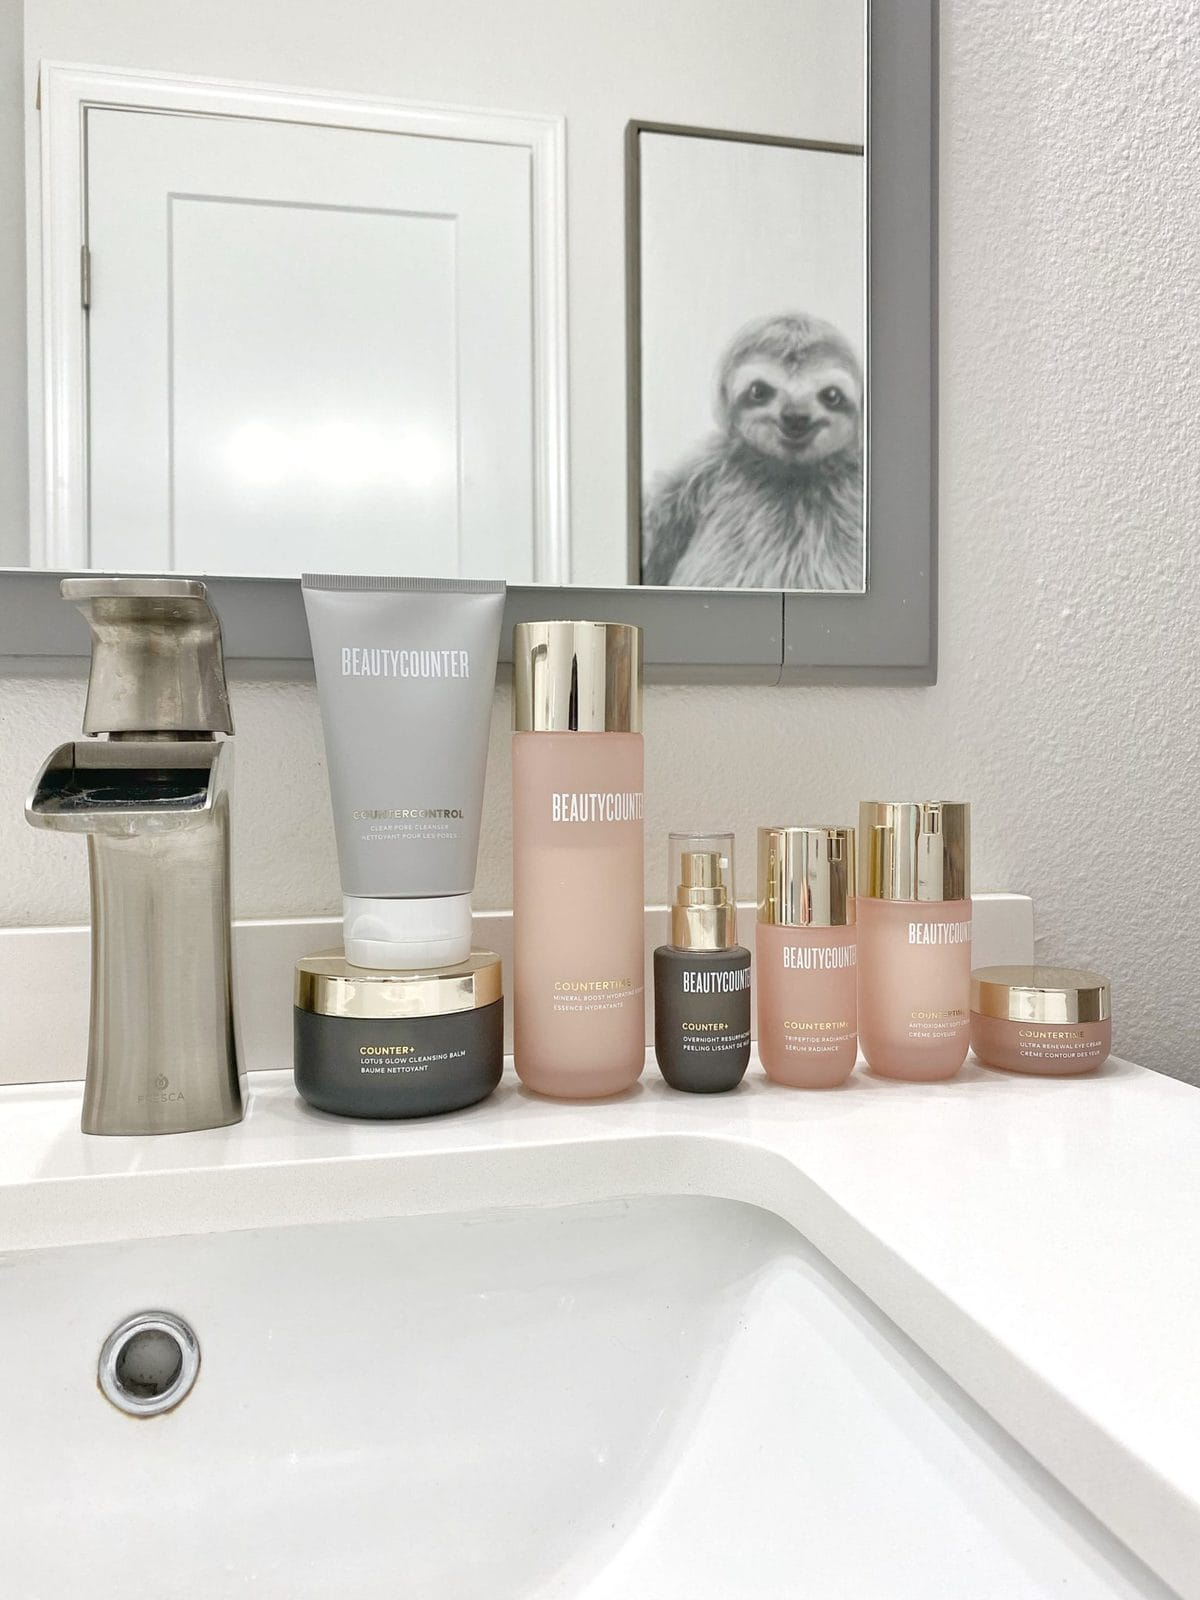 Image of safer skincare products on a bathroom counter - Beautycounter Overnight Resurfacing Peel and Countertime Line